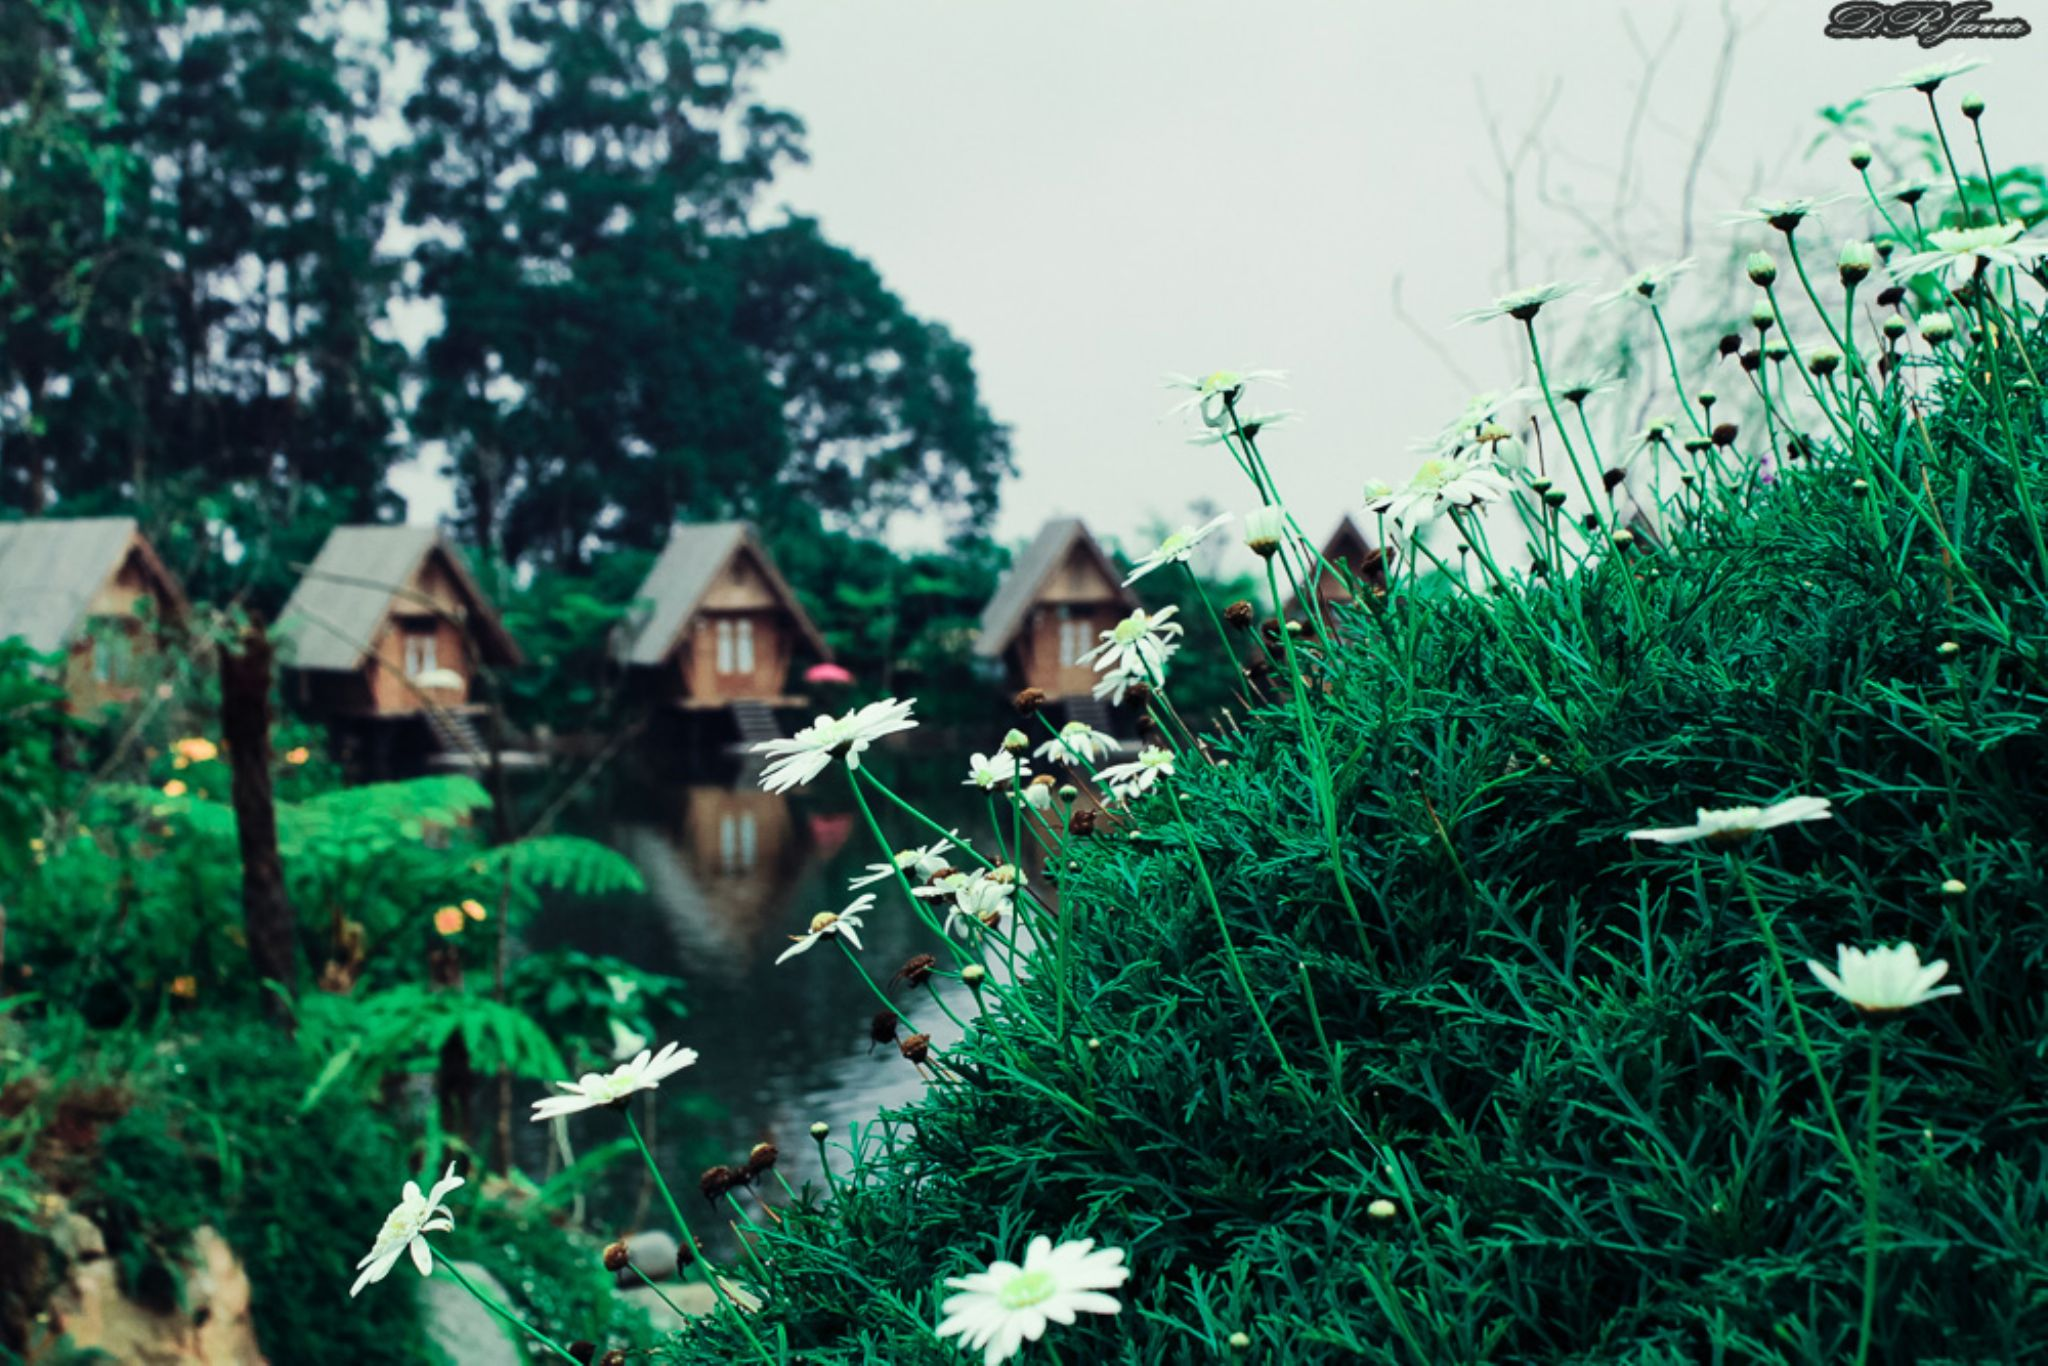 flower at dusun bambu Indonesia by erje61